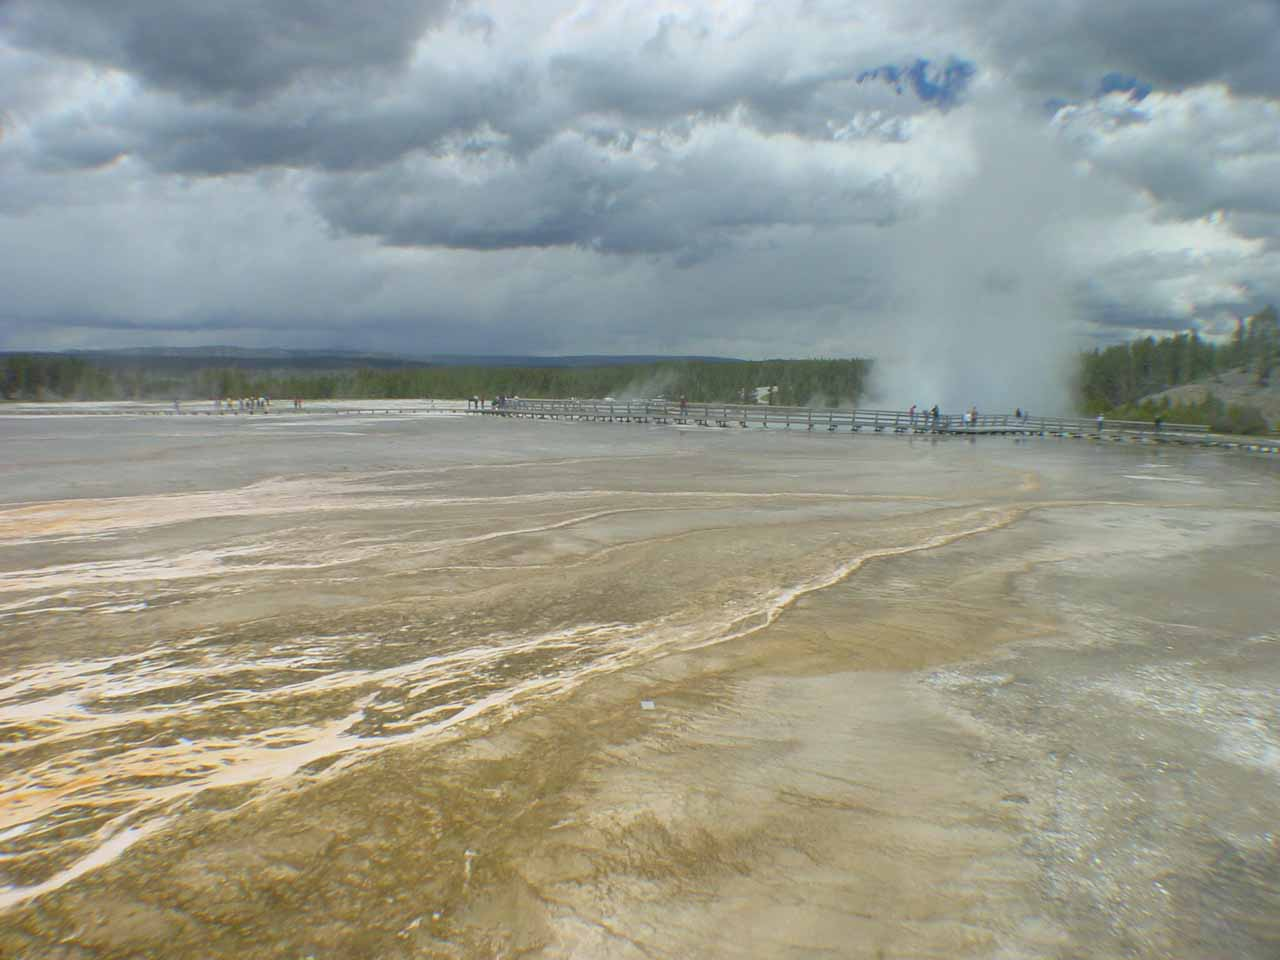 Looking across some beige mats near the Grand Prismatic Spring